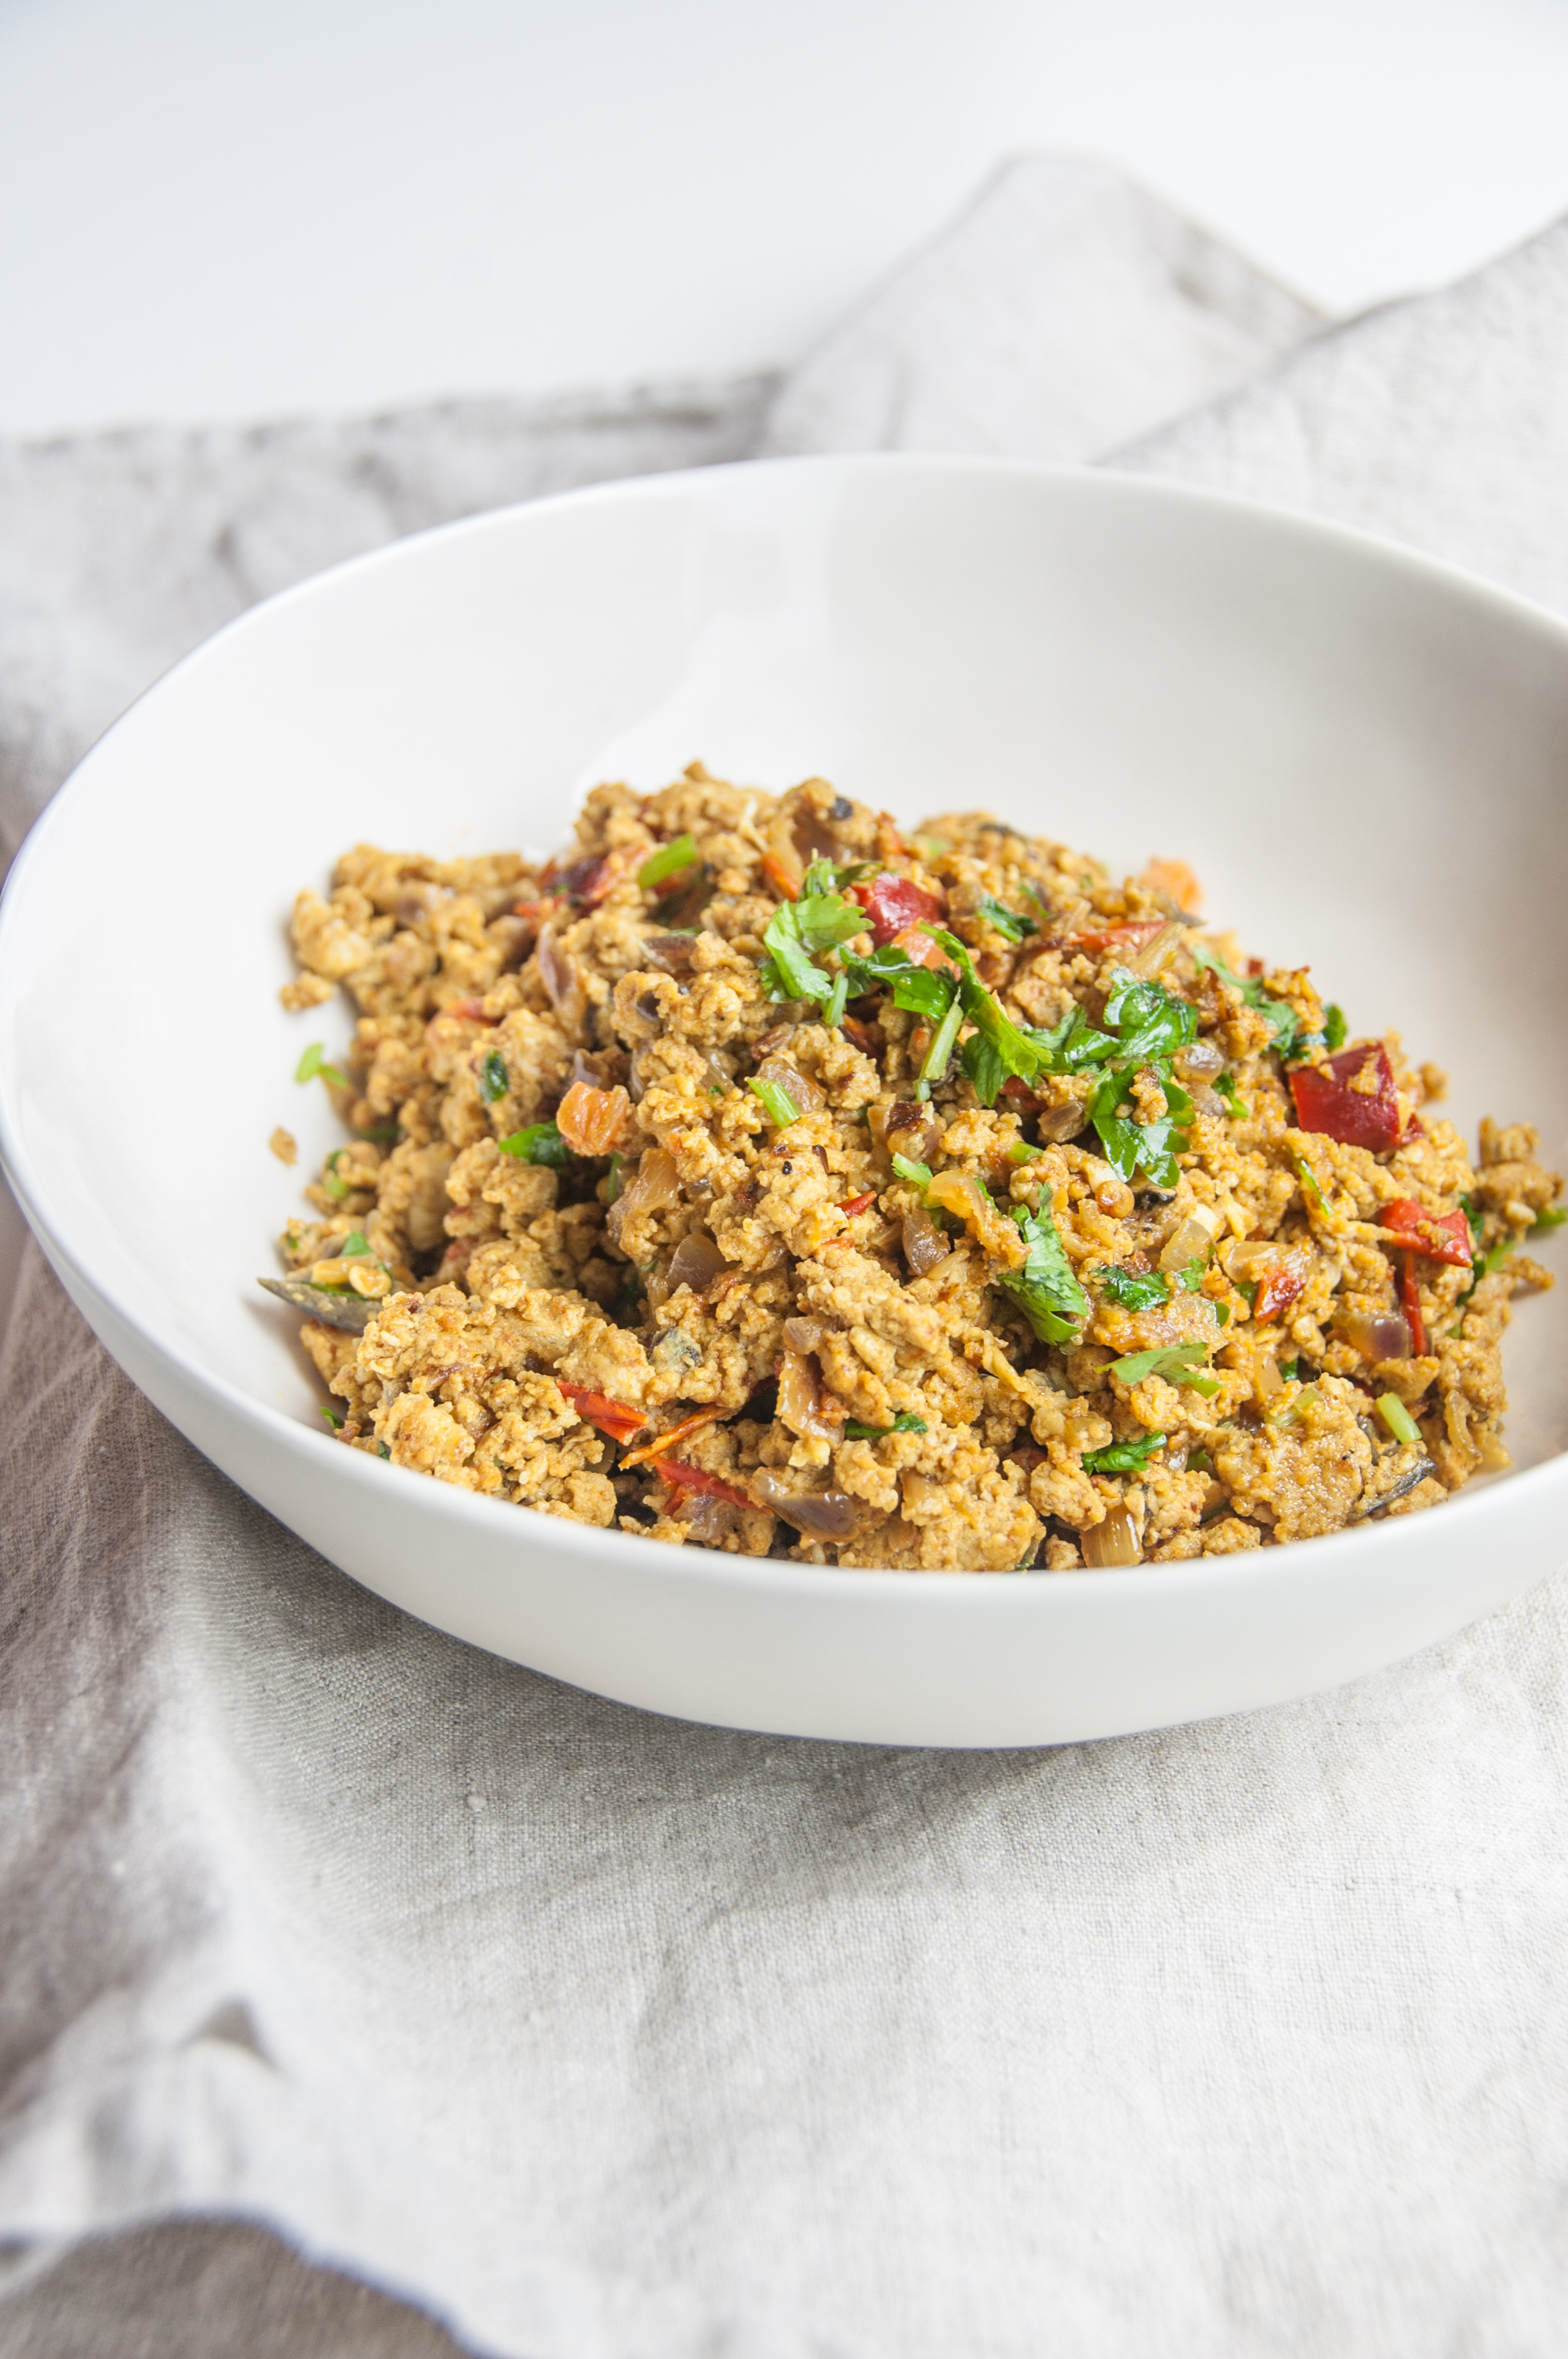 A classic Indian scrambled eggs with cumin based spices, and lots of love!